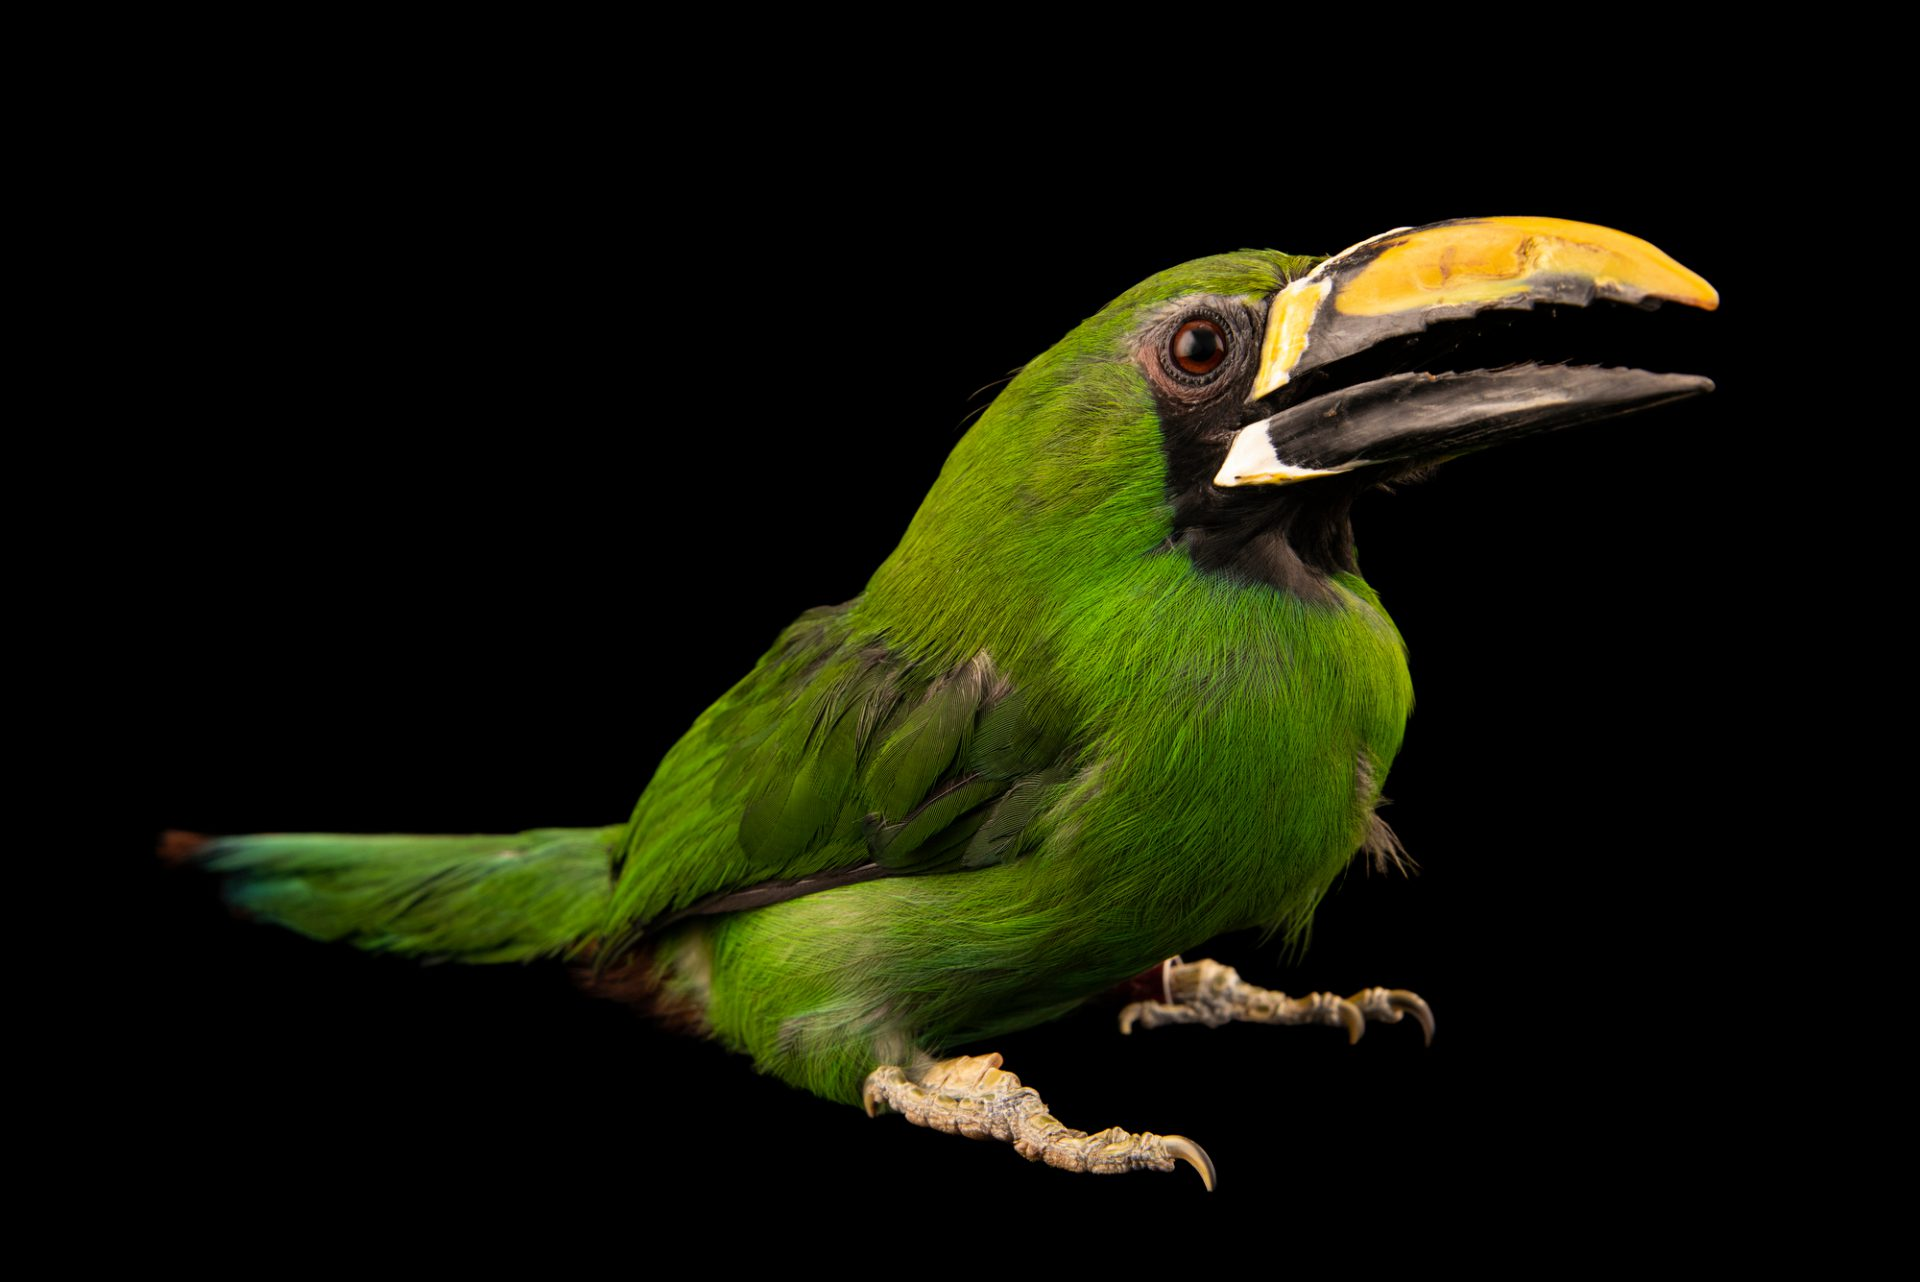 Photo: A female Peruvian toucanet (Aulacorhynchus atrogularis) at the Dallas World Aquarium.